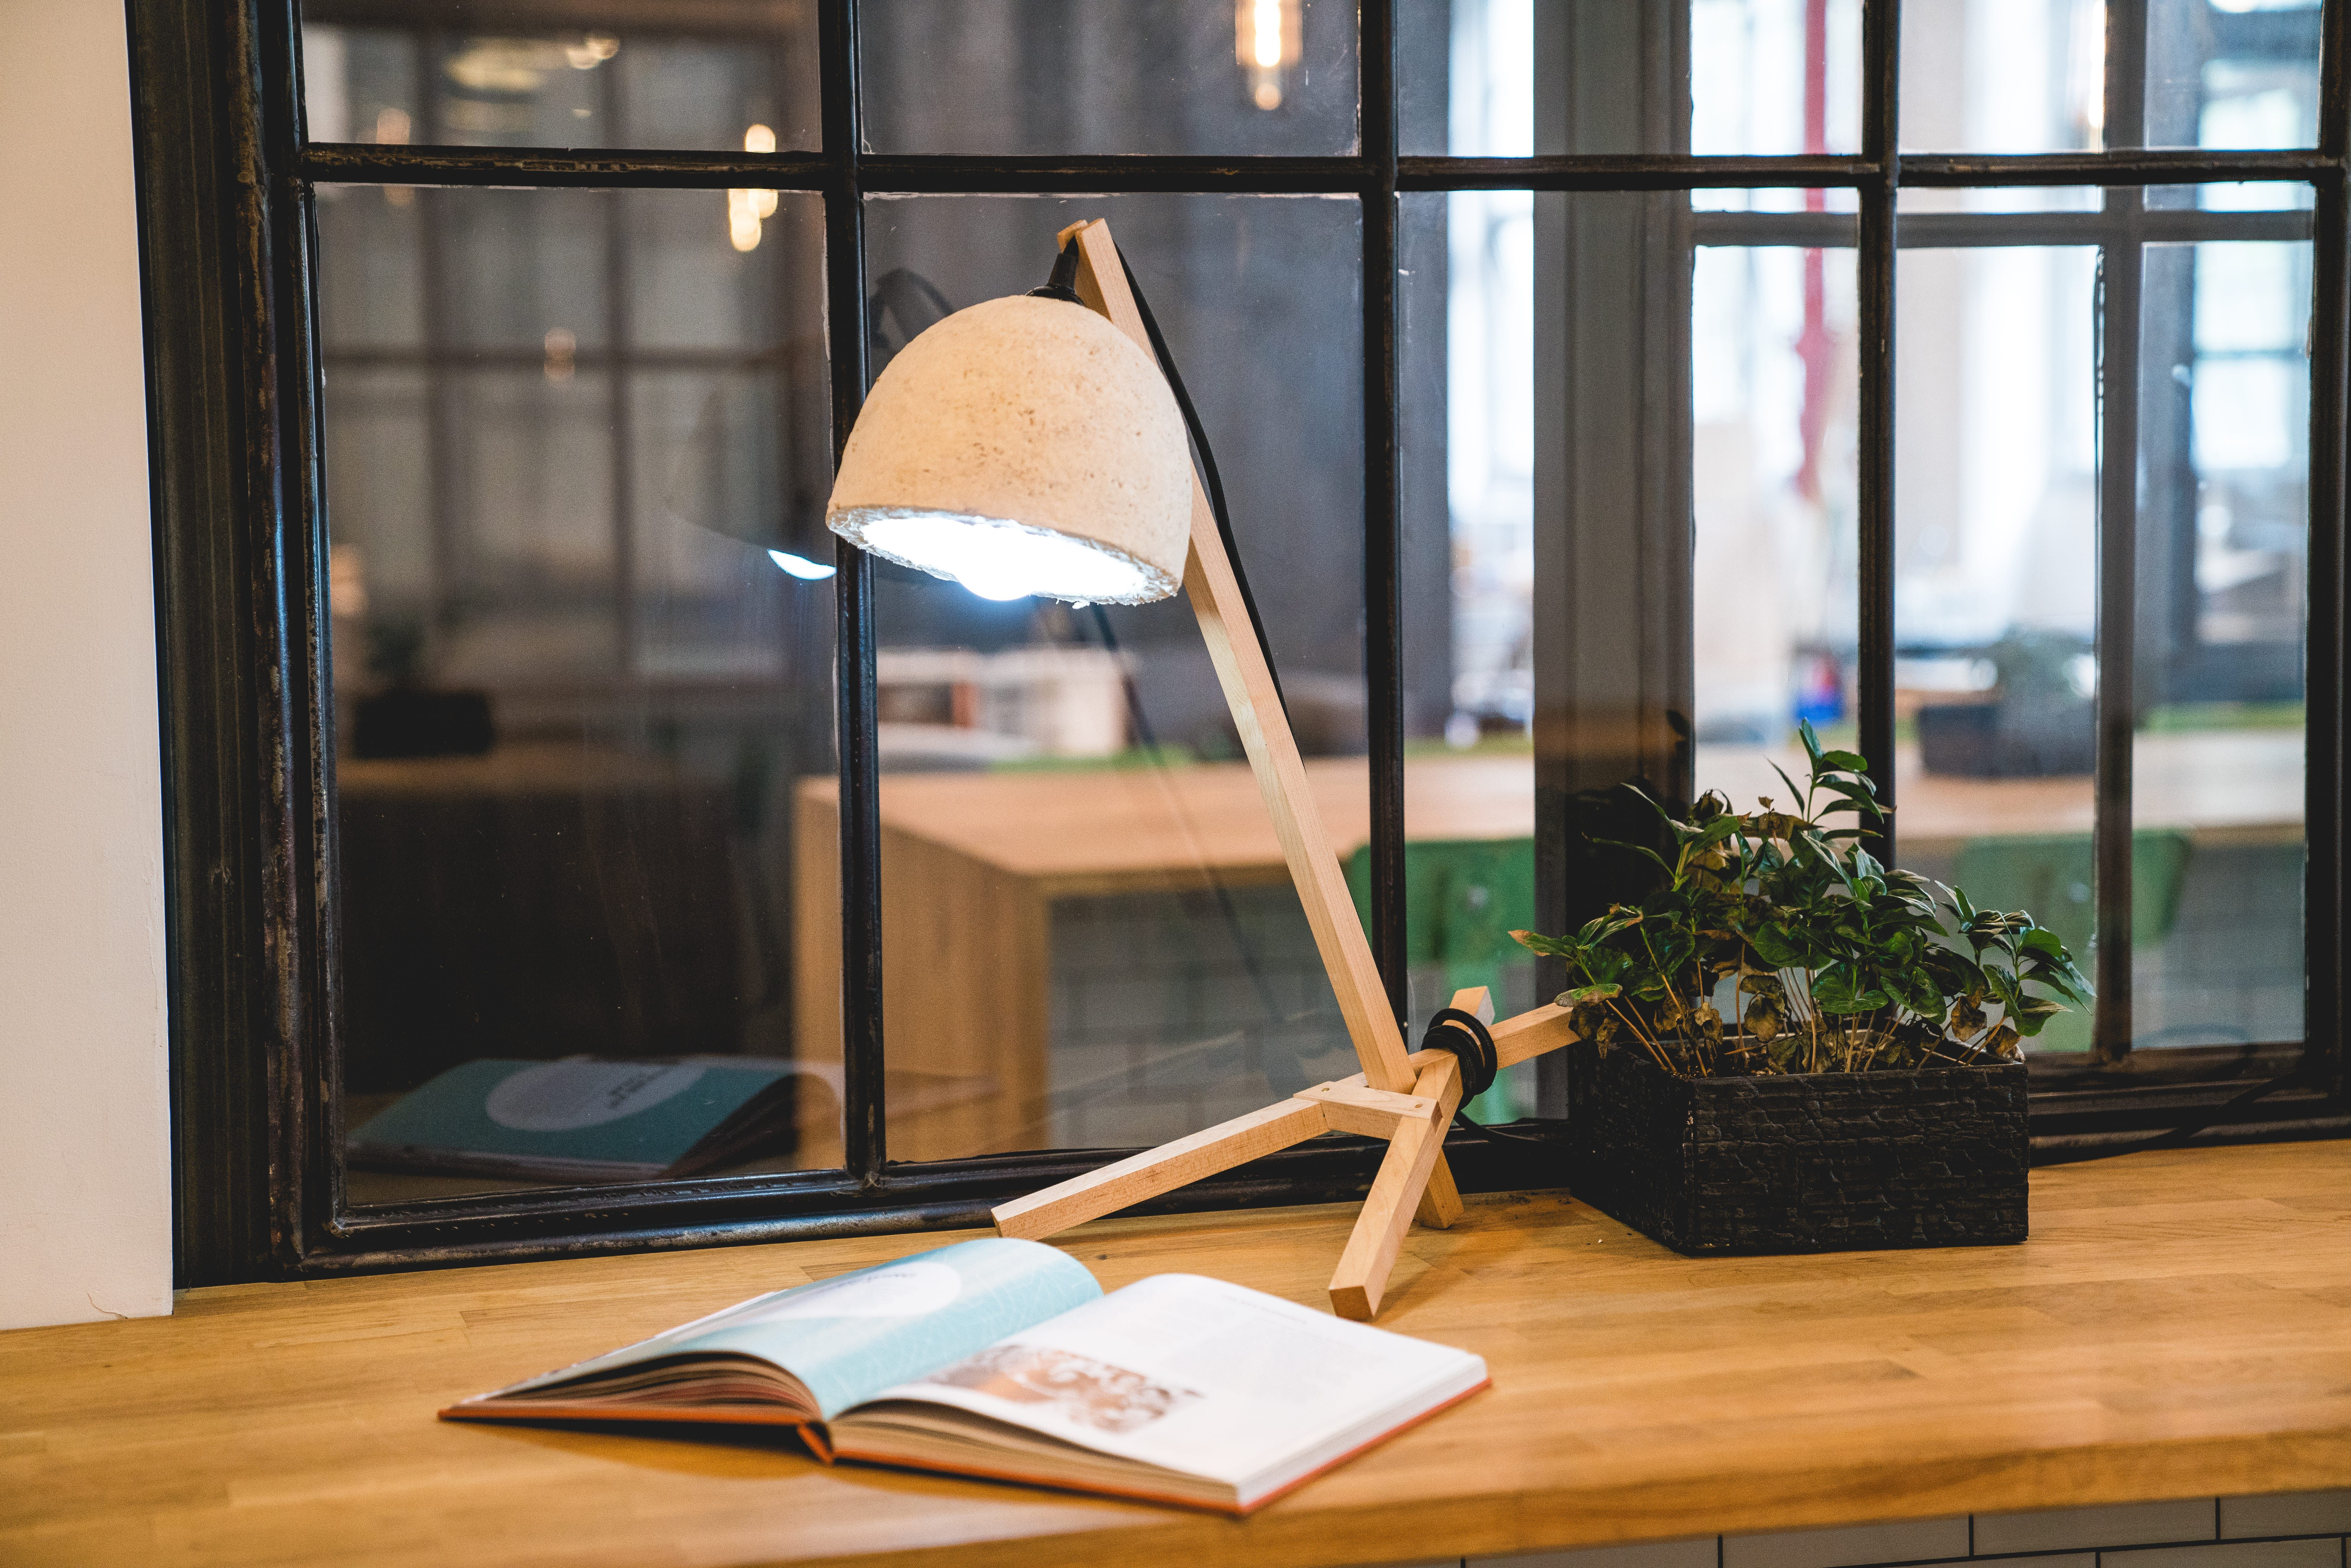 workspace lighting. #reading #lighting #desk #workspace #lamp #growityourself #kickstarter workspace lighting